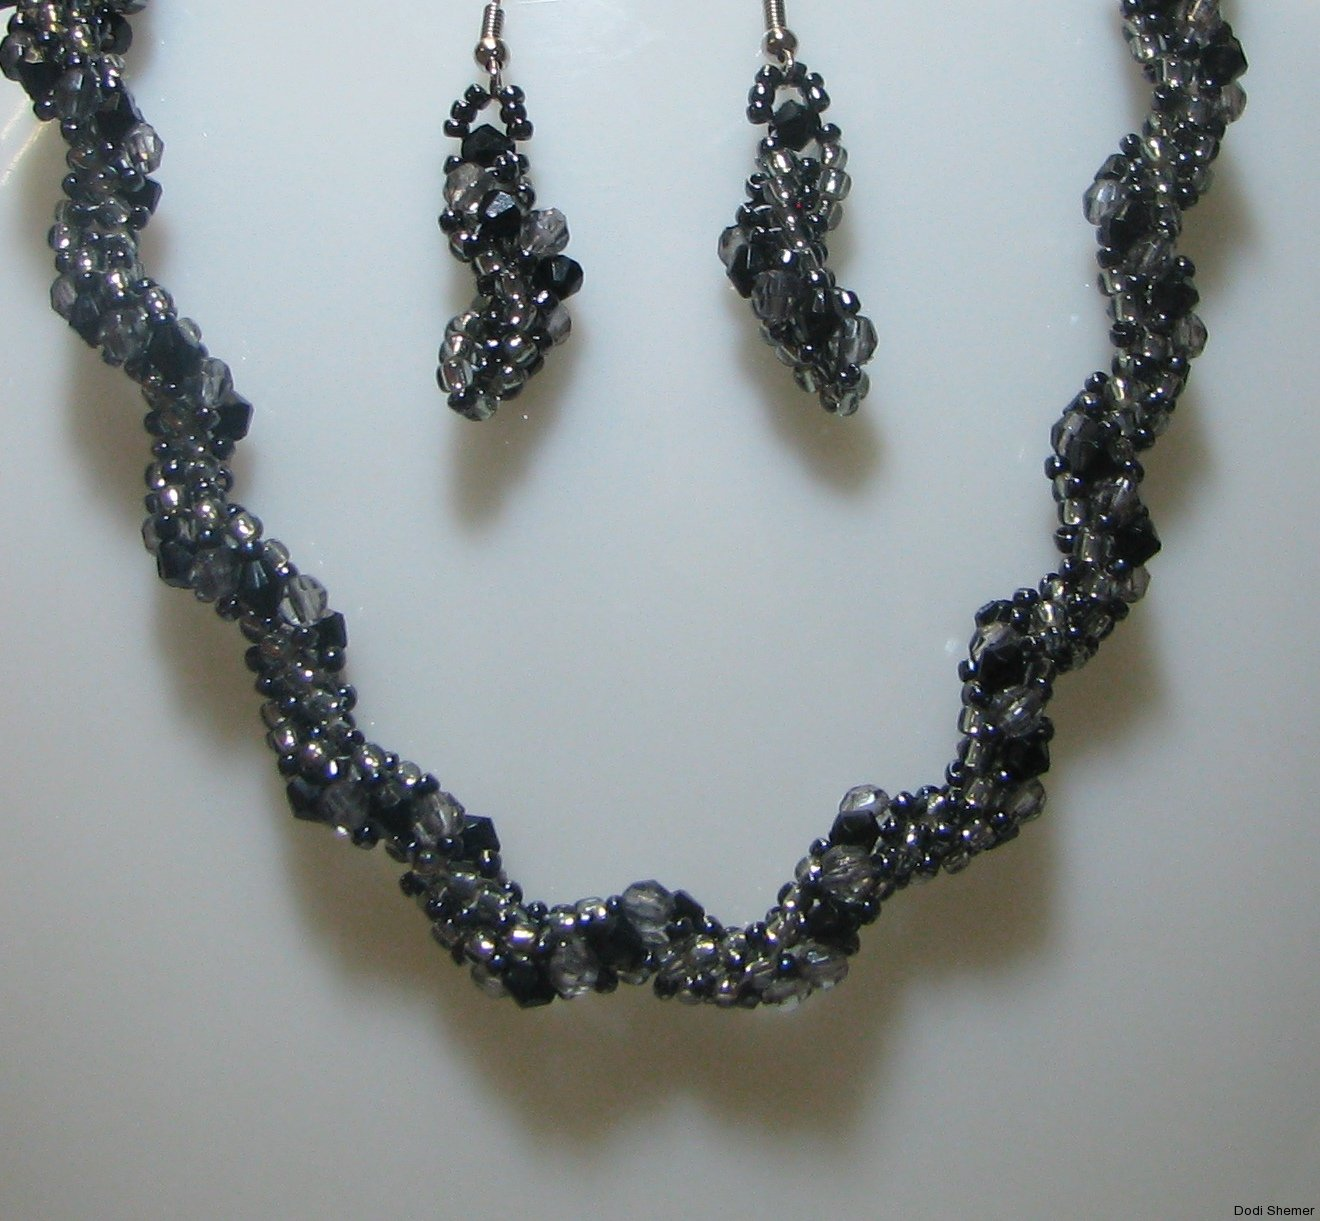 necklace_2_img_6293